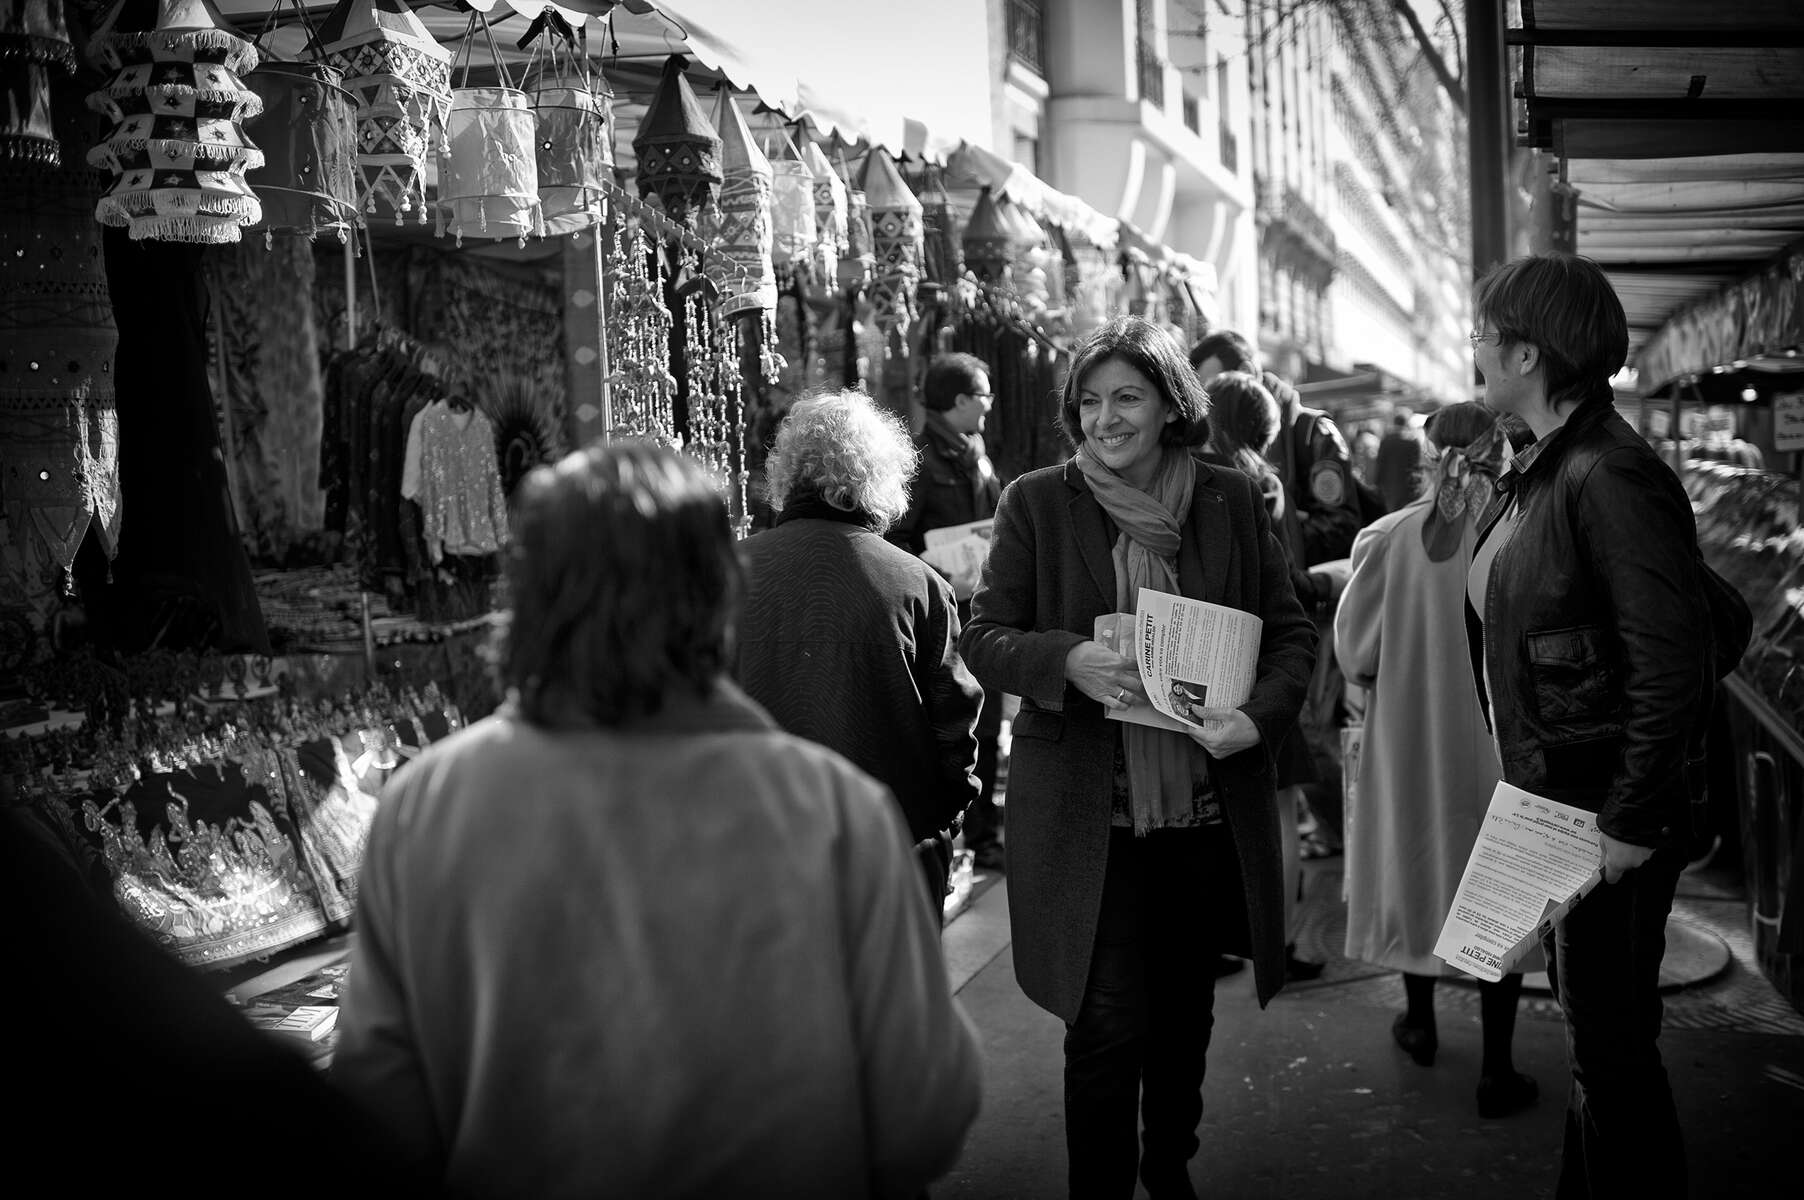 March 16, 2014.  PARIS, FRANCE- Anne Hidalgo tchats with voters in the Marche Brune in Paris' 14th arrondissement.   For the first time in France's history, Paris will have a woman as a mayor - either Socialist Anne Hidalgo or Center-Right Nathalie Kosciusko-Morizet.  Photo by Scout Tufankjian